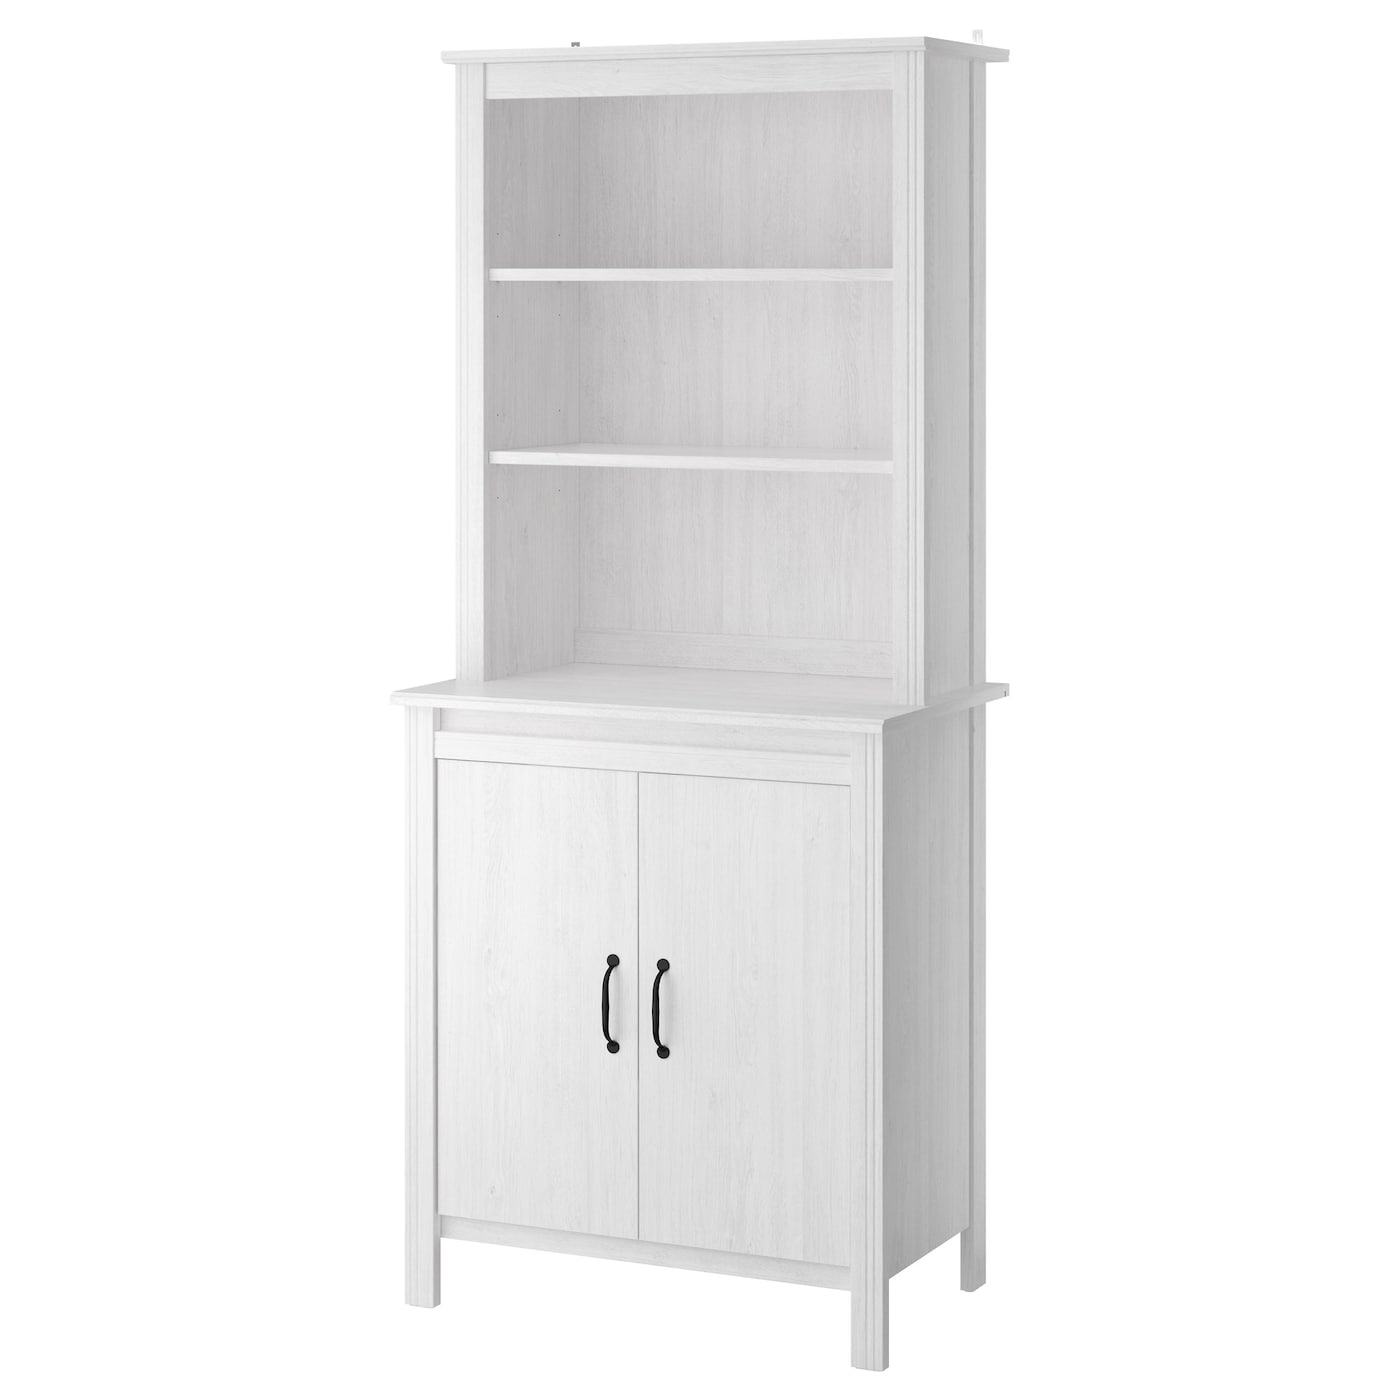 ikea storage cabinets brusali high cabinet with door white 80 x 190 cm ikea 29806